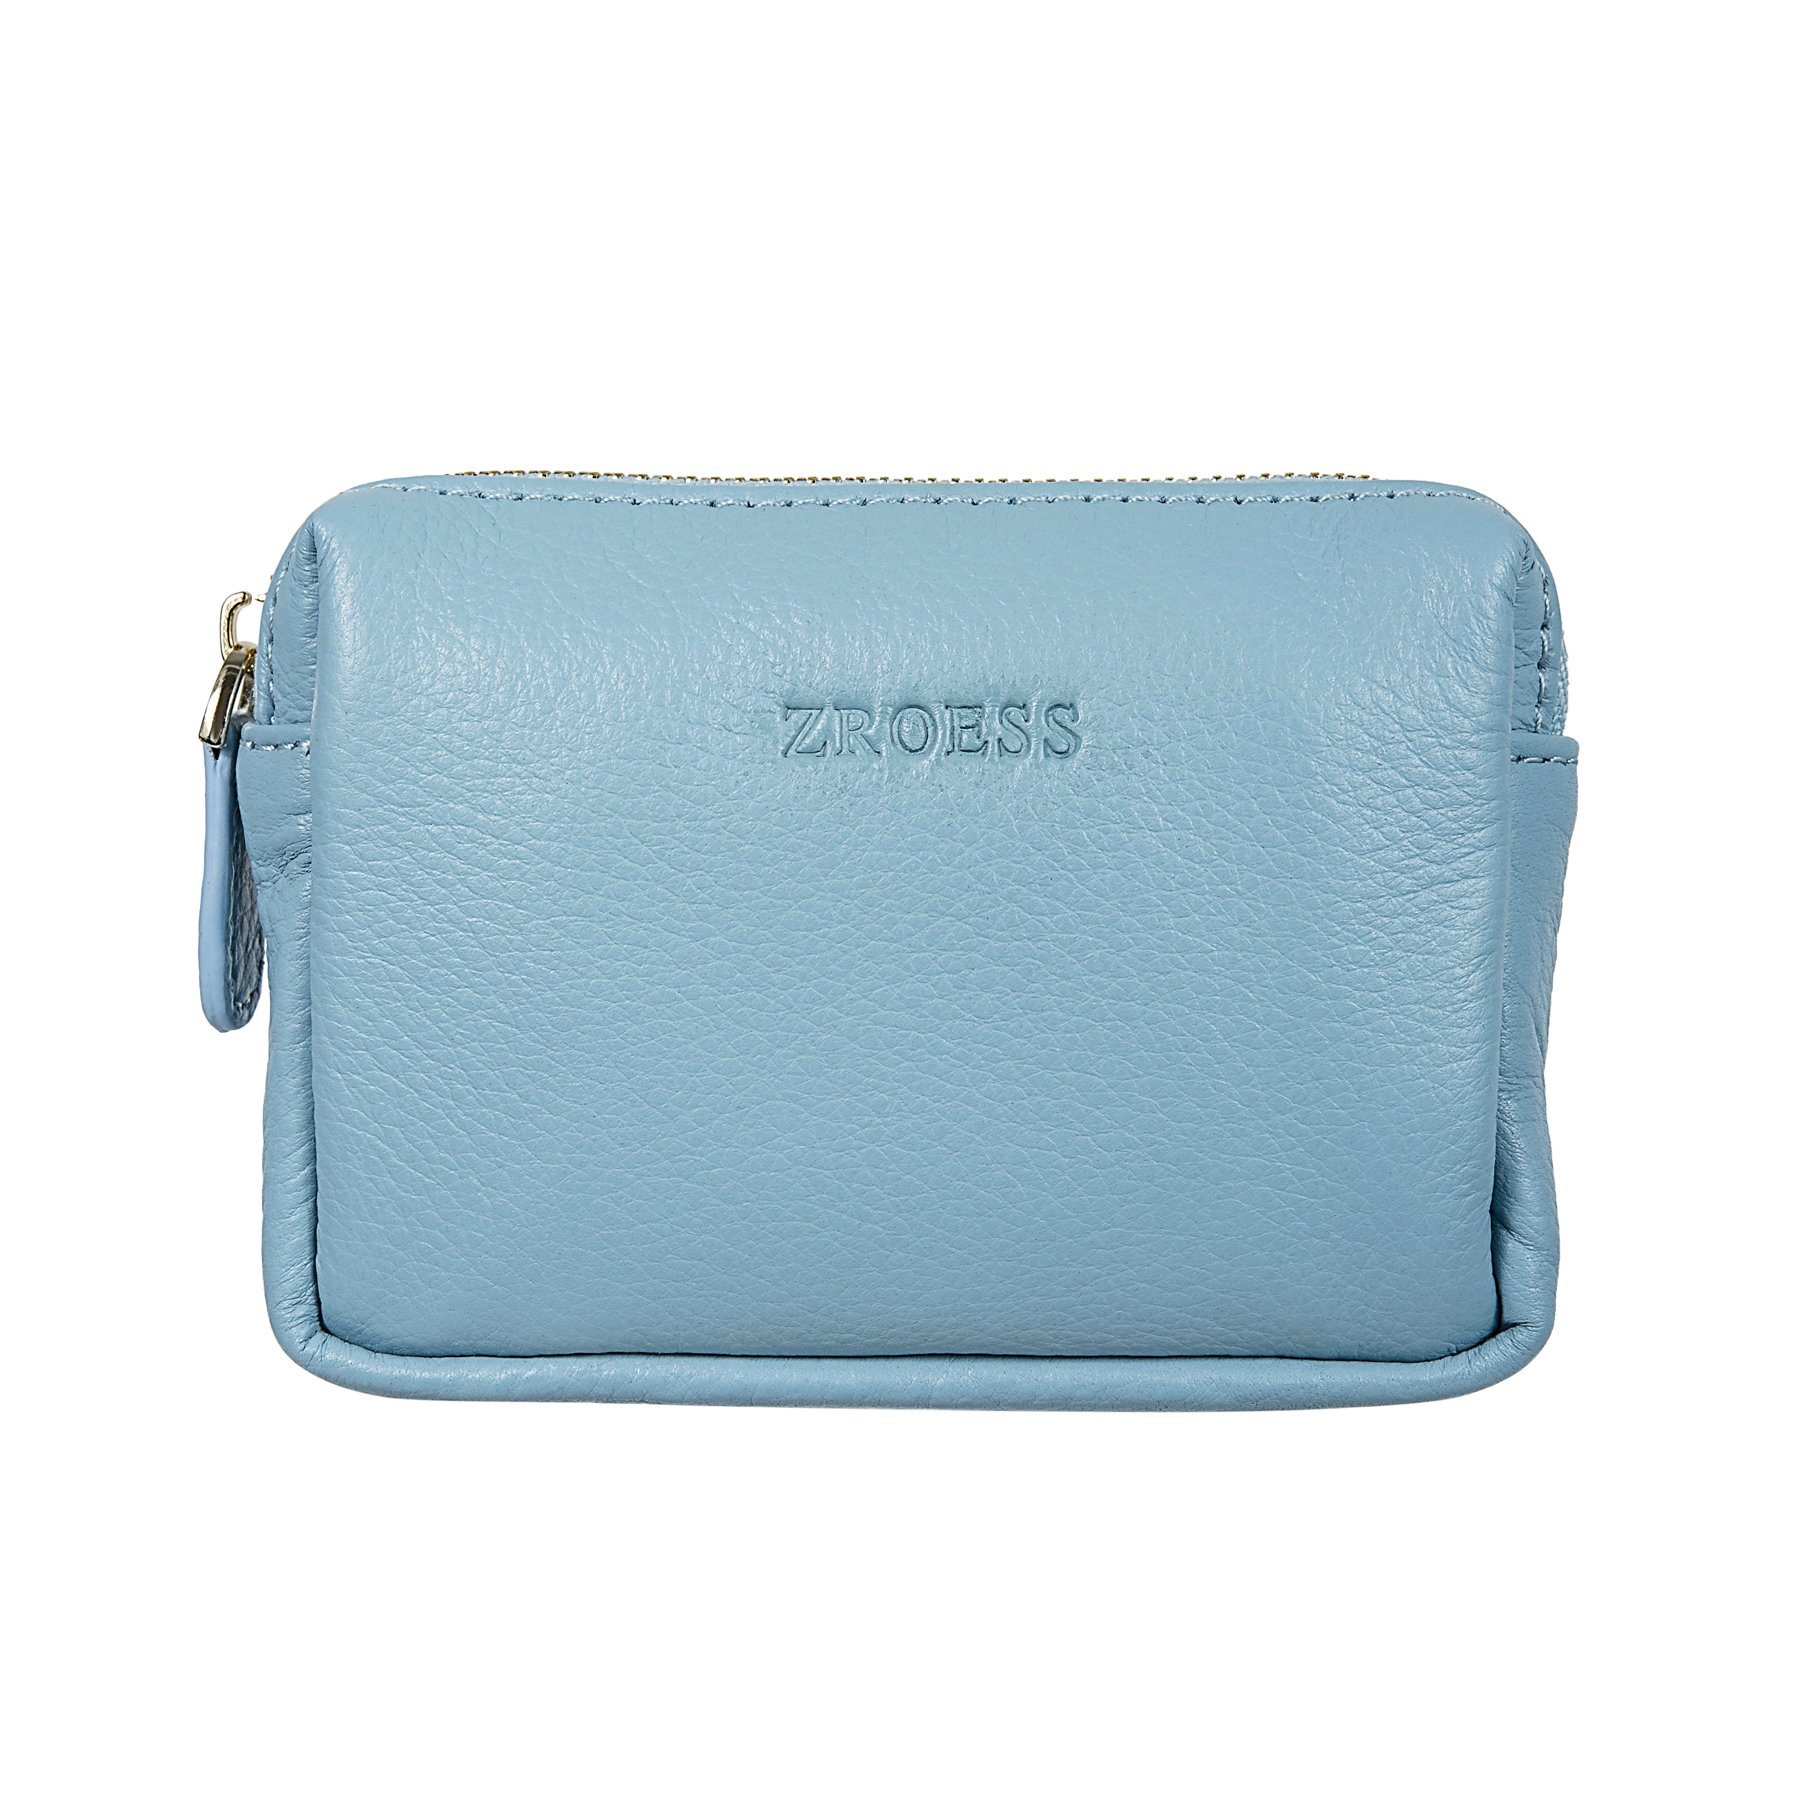 ZORESS Mini Soft Leather Coin Purse Card Holder with Key Chain (Blue)